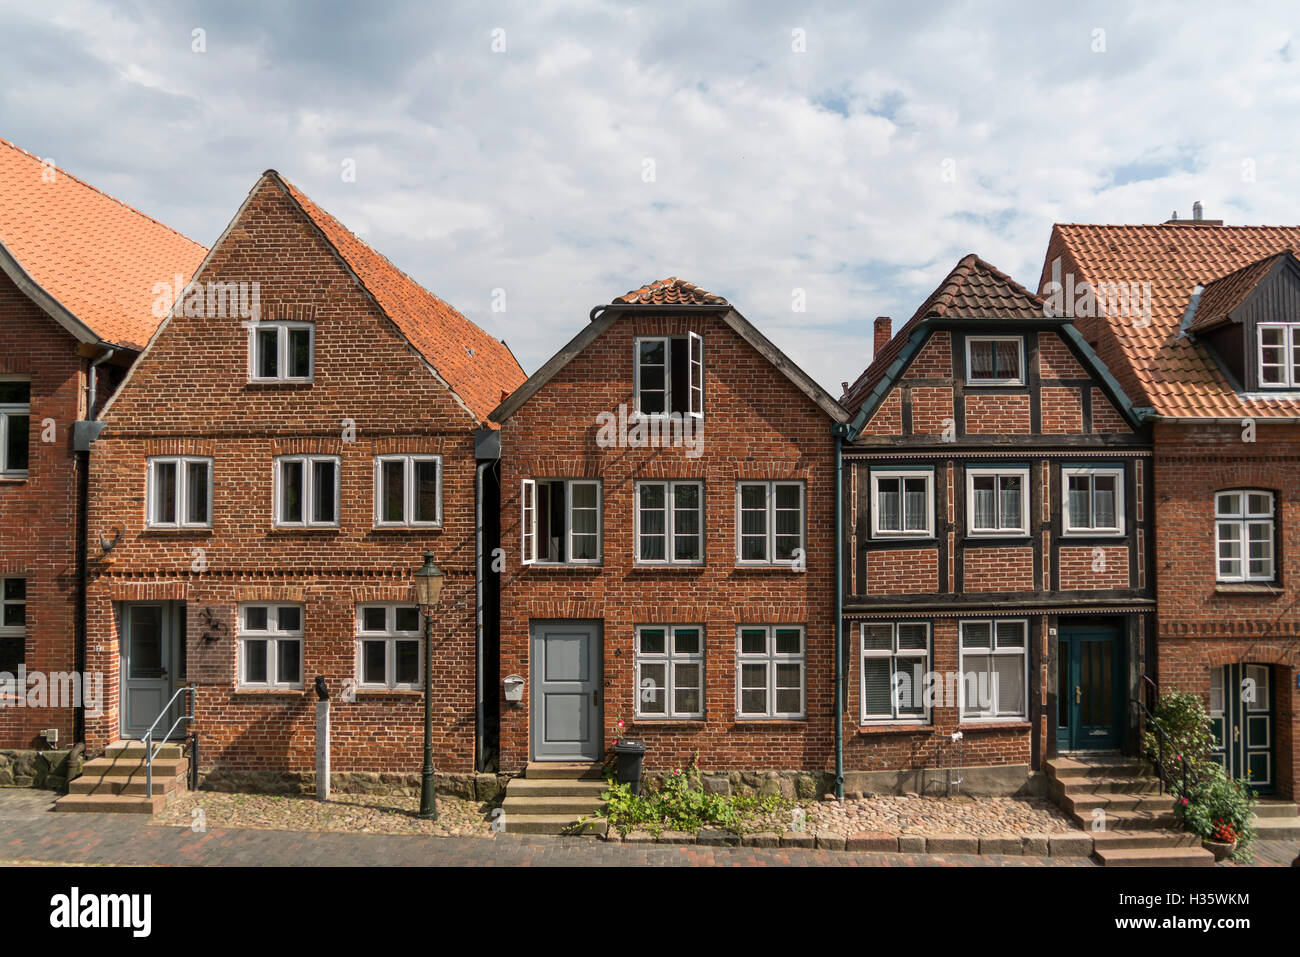 typical brick homes in moelln schleswig holstein germany europe stock photo 122446456 alamy. Black Bedroom Furniture Sets. Home Design Ideas